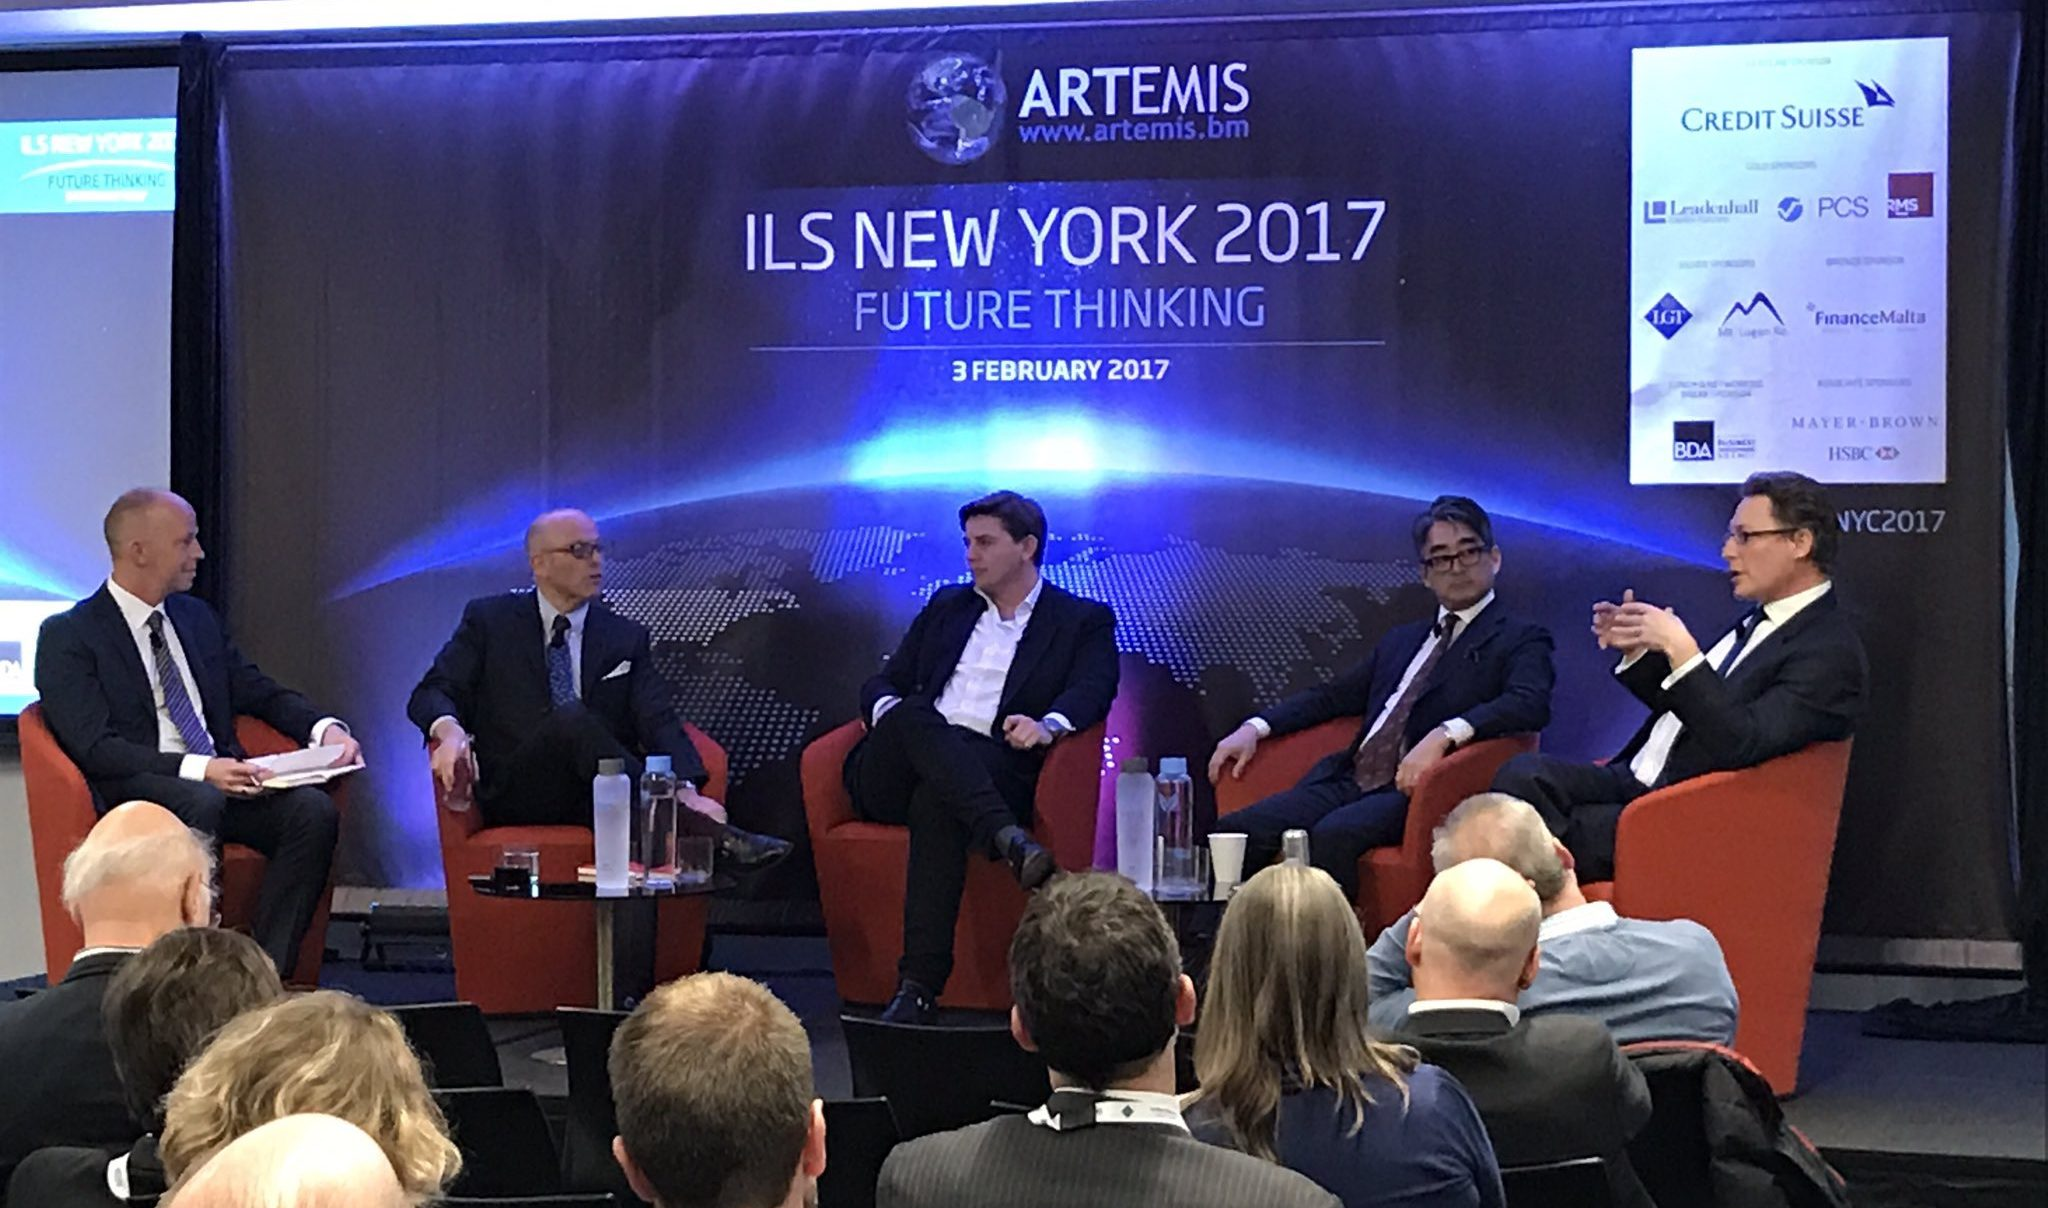 A panel at the well-received Artemis' ILS NYC 20